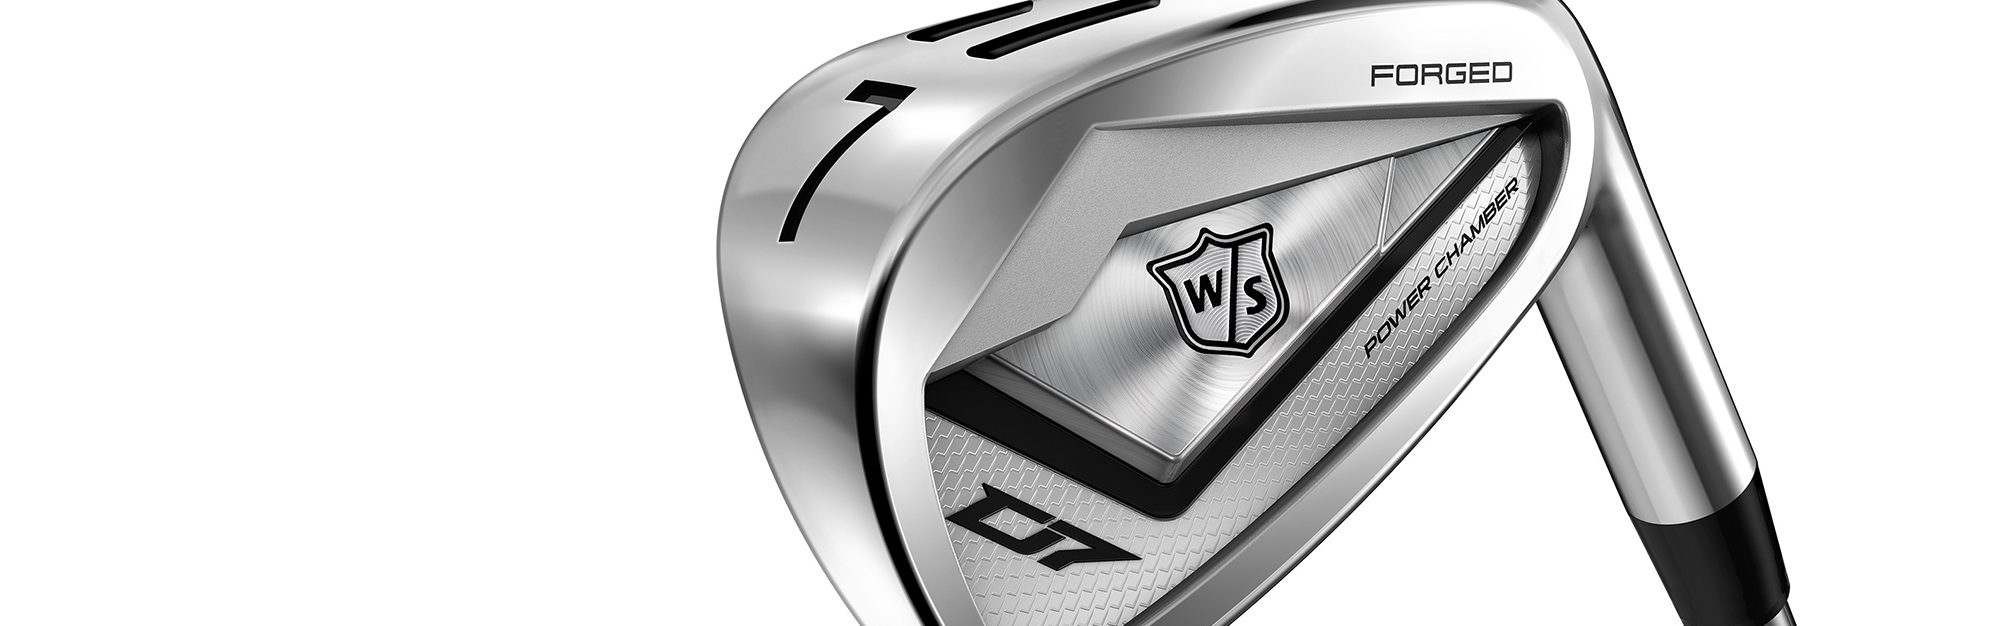 Wilson D7 Forged irons review